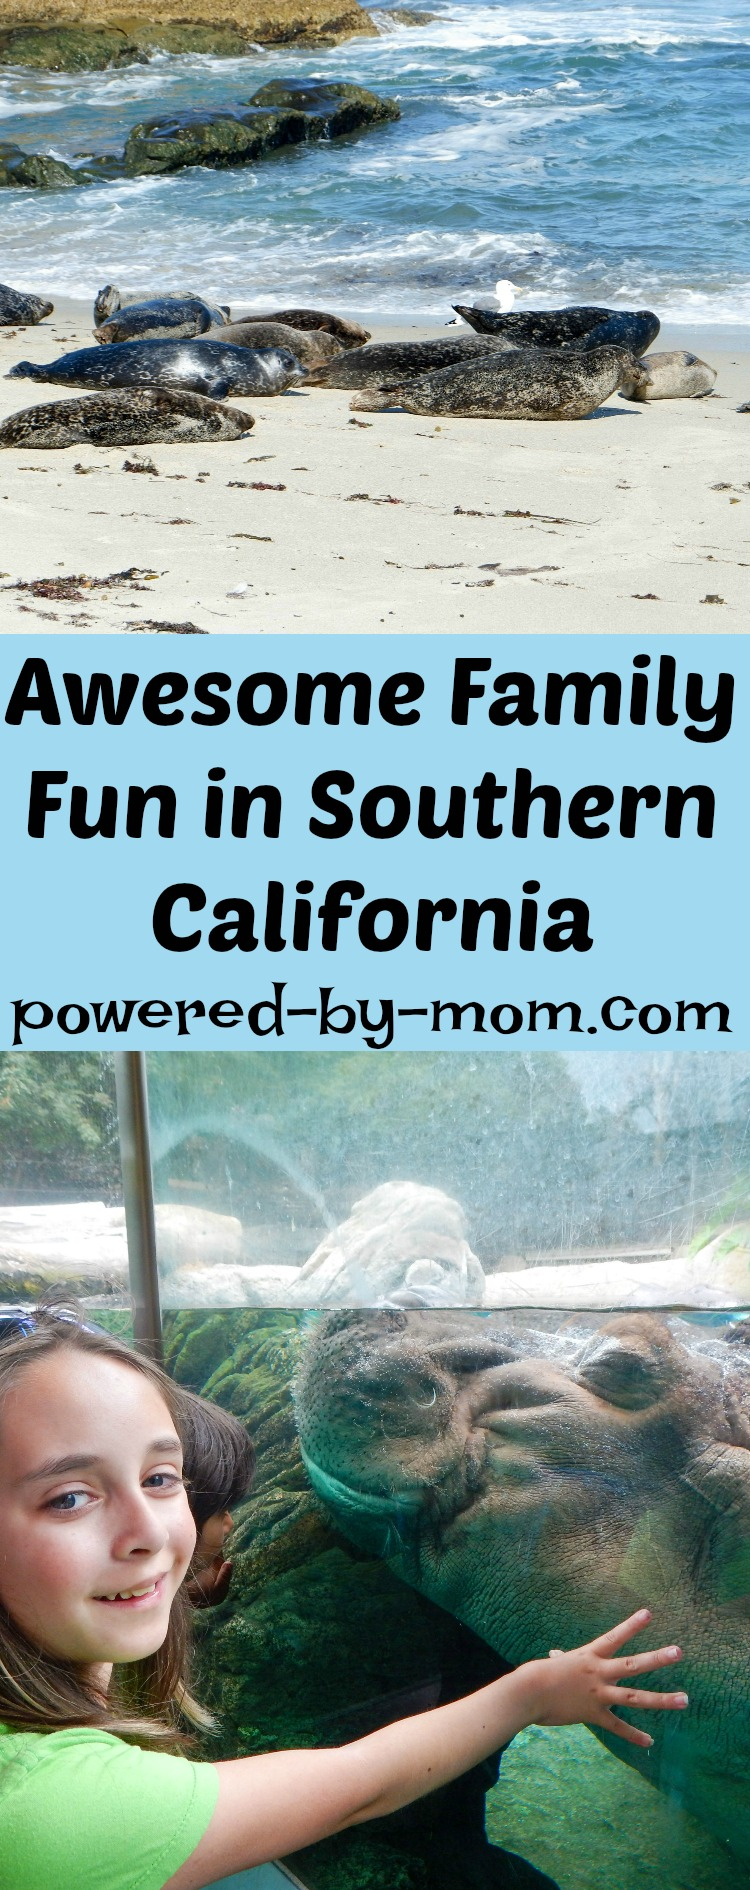 kid-friendly places in Southern California - La Jolla seals and sea lions childrens pool